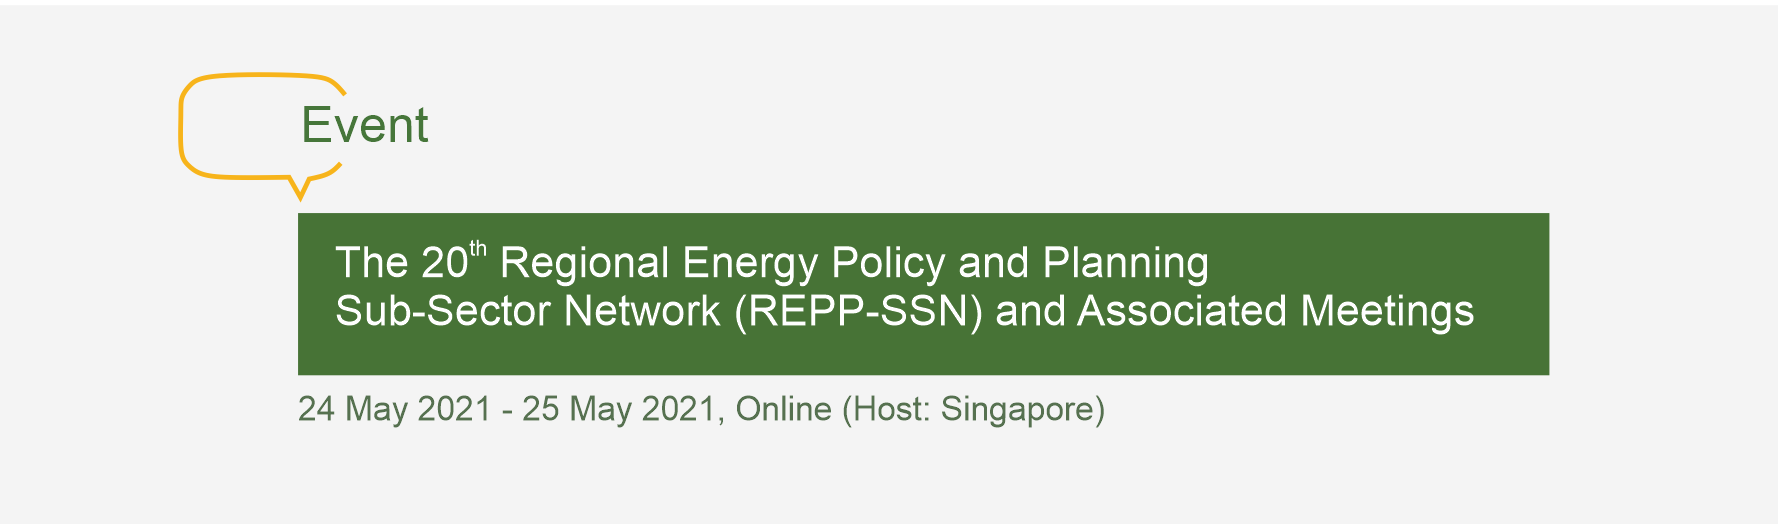 The 20th Regional Energy Policy and Planning Sub-Sector Network (REPP-SSN) and Associated Meetings